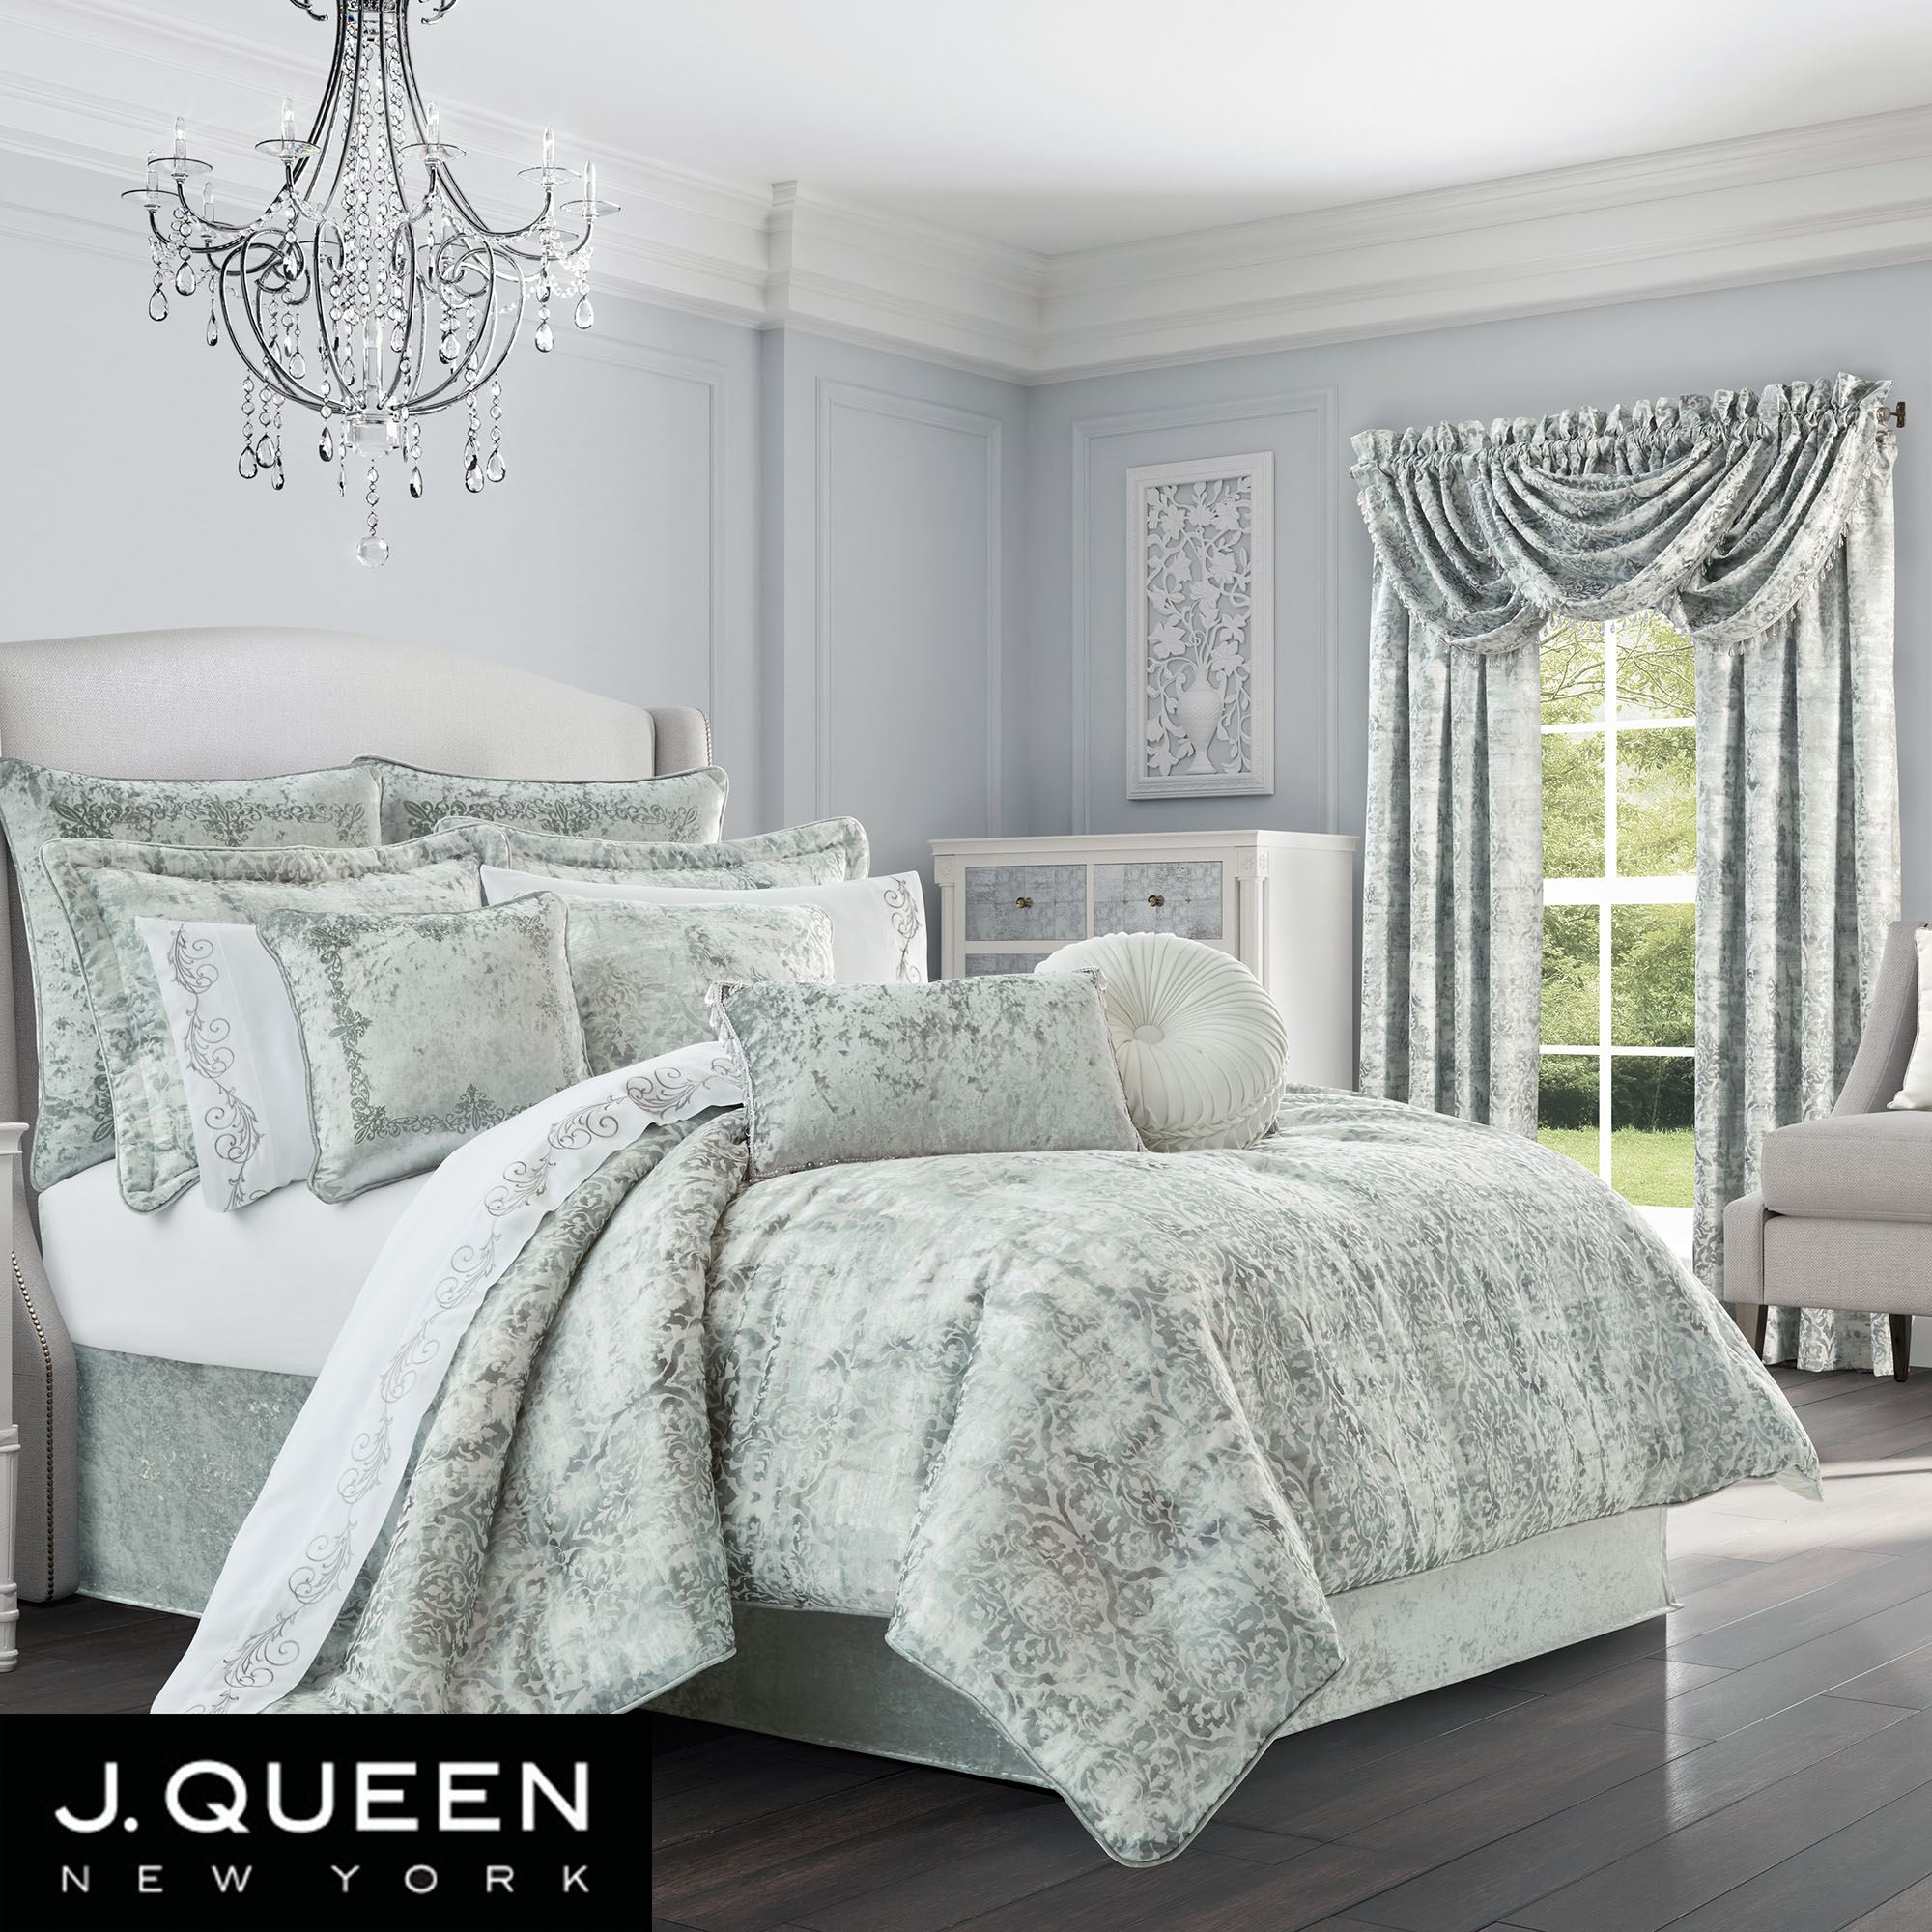 Dream Pale Blue Damask Comforter Bedding by J Queen New York